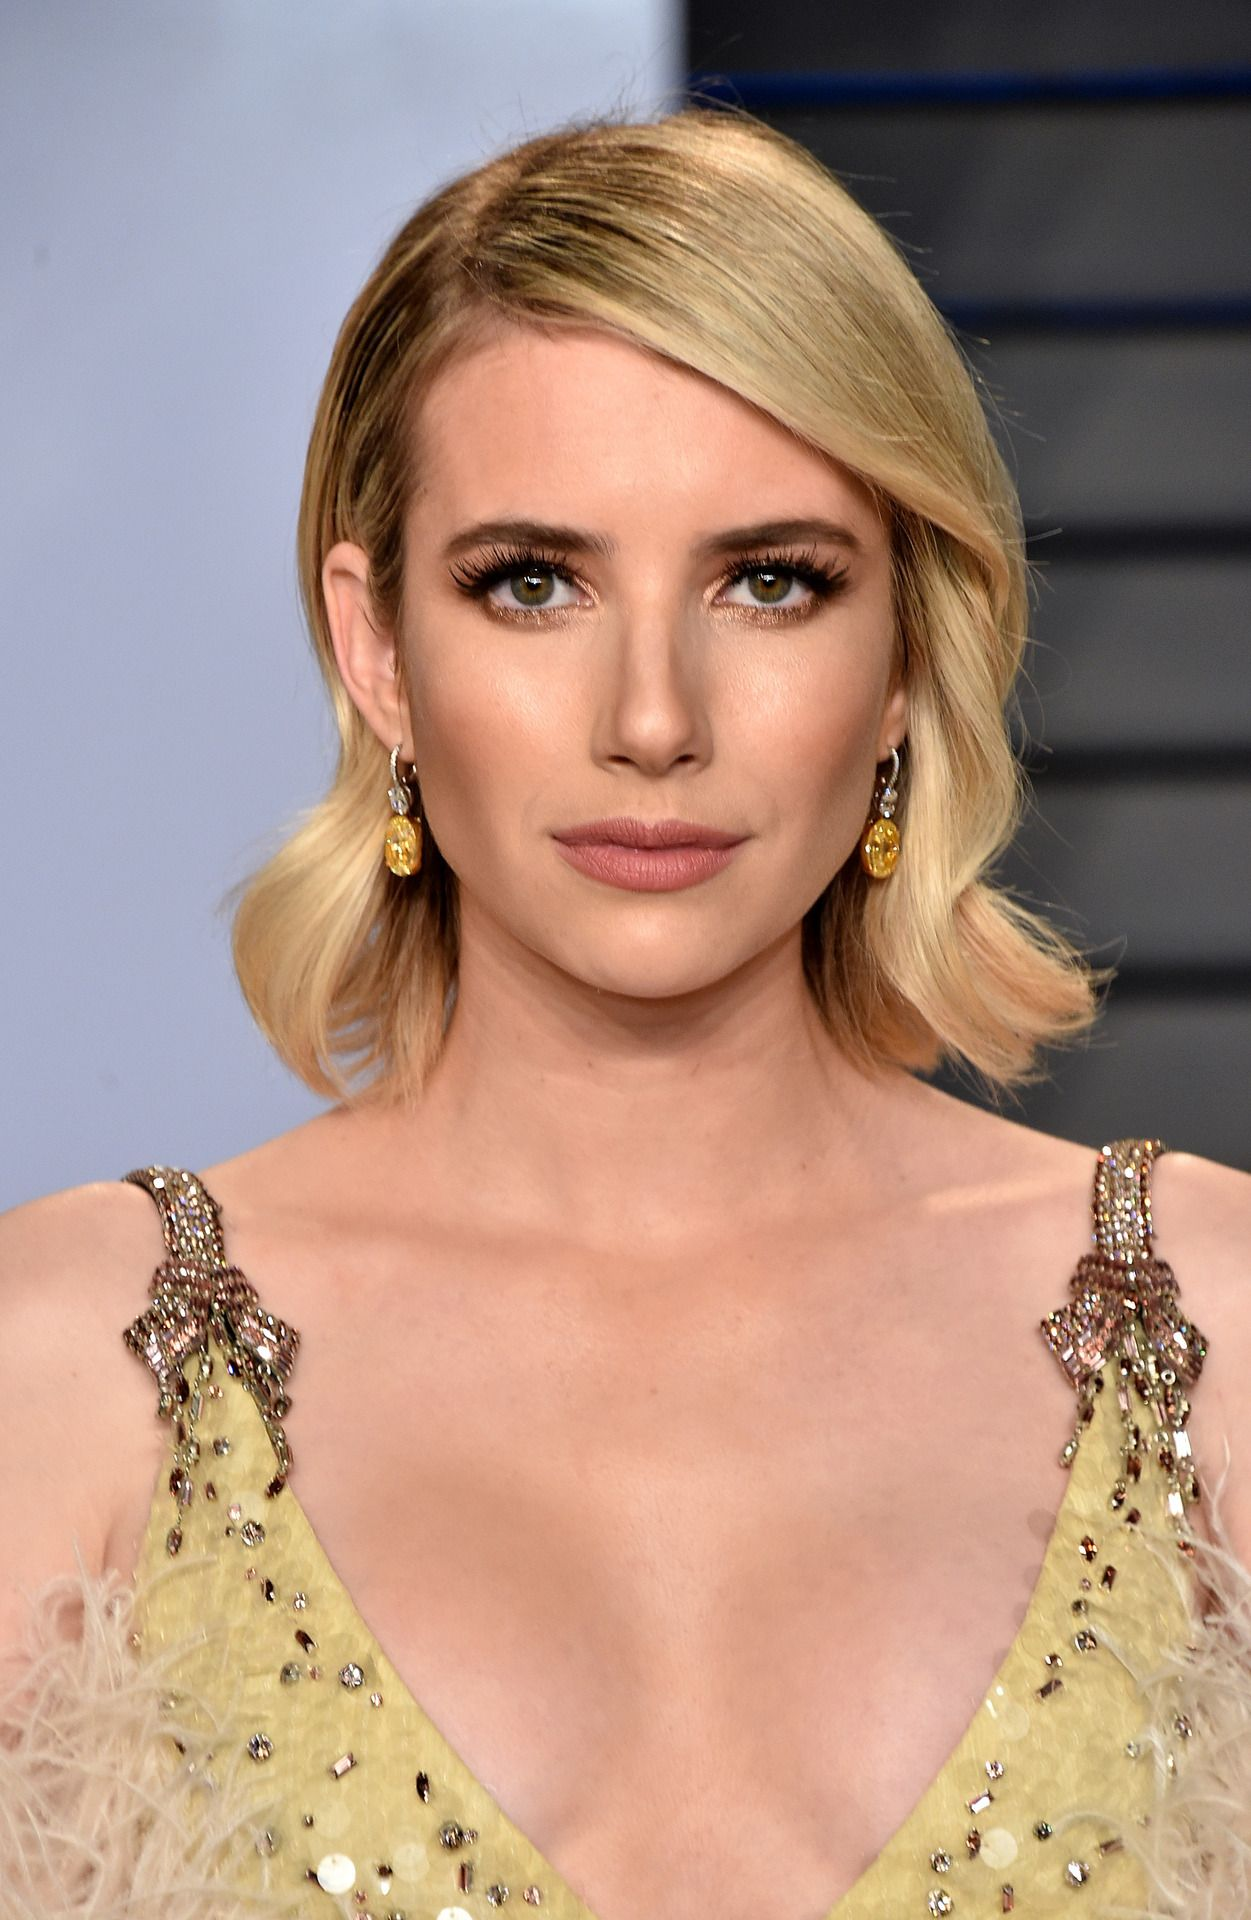 Emma Roberts Attends The 2018 Vanity Fair Oscar Party Hosted By Radhika Jones At The Wallis Annenberg Center F Wedding Hair And Makeup Beauty Girl Emma Roberts